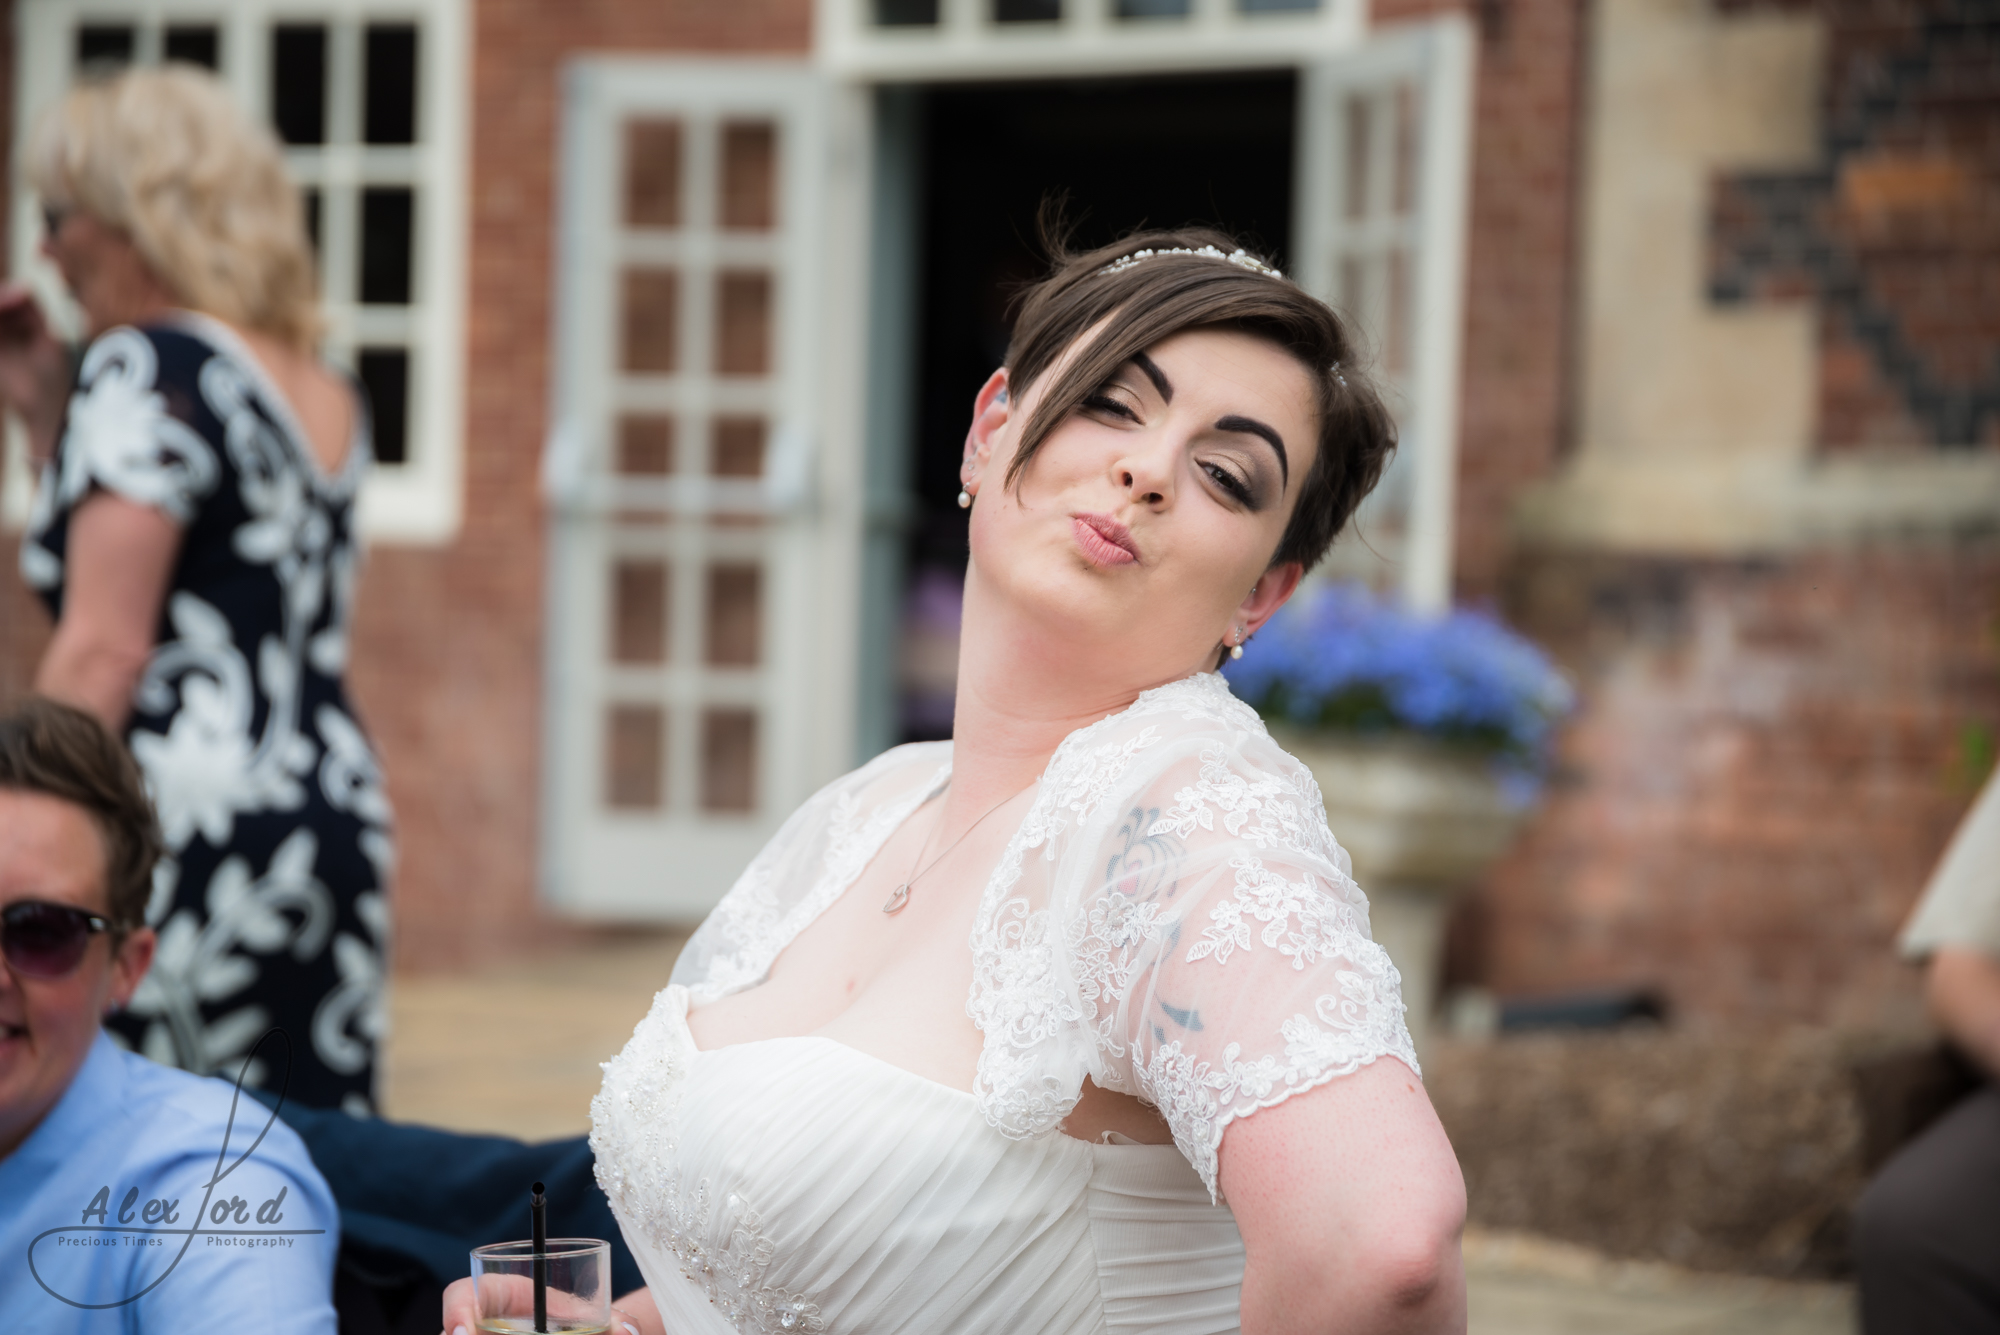 the bride puts directly at the camera outside the wedding venue